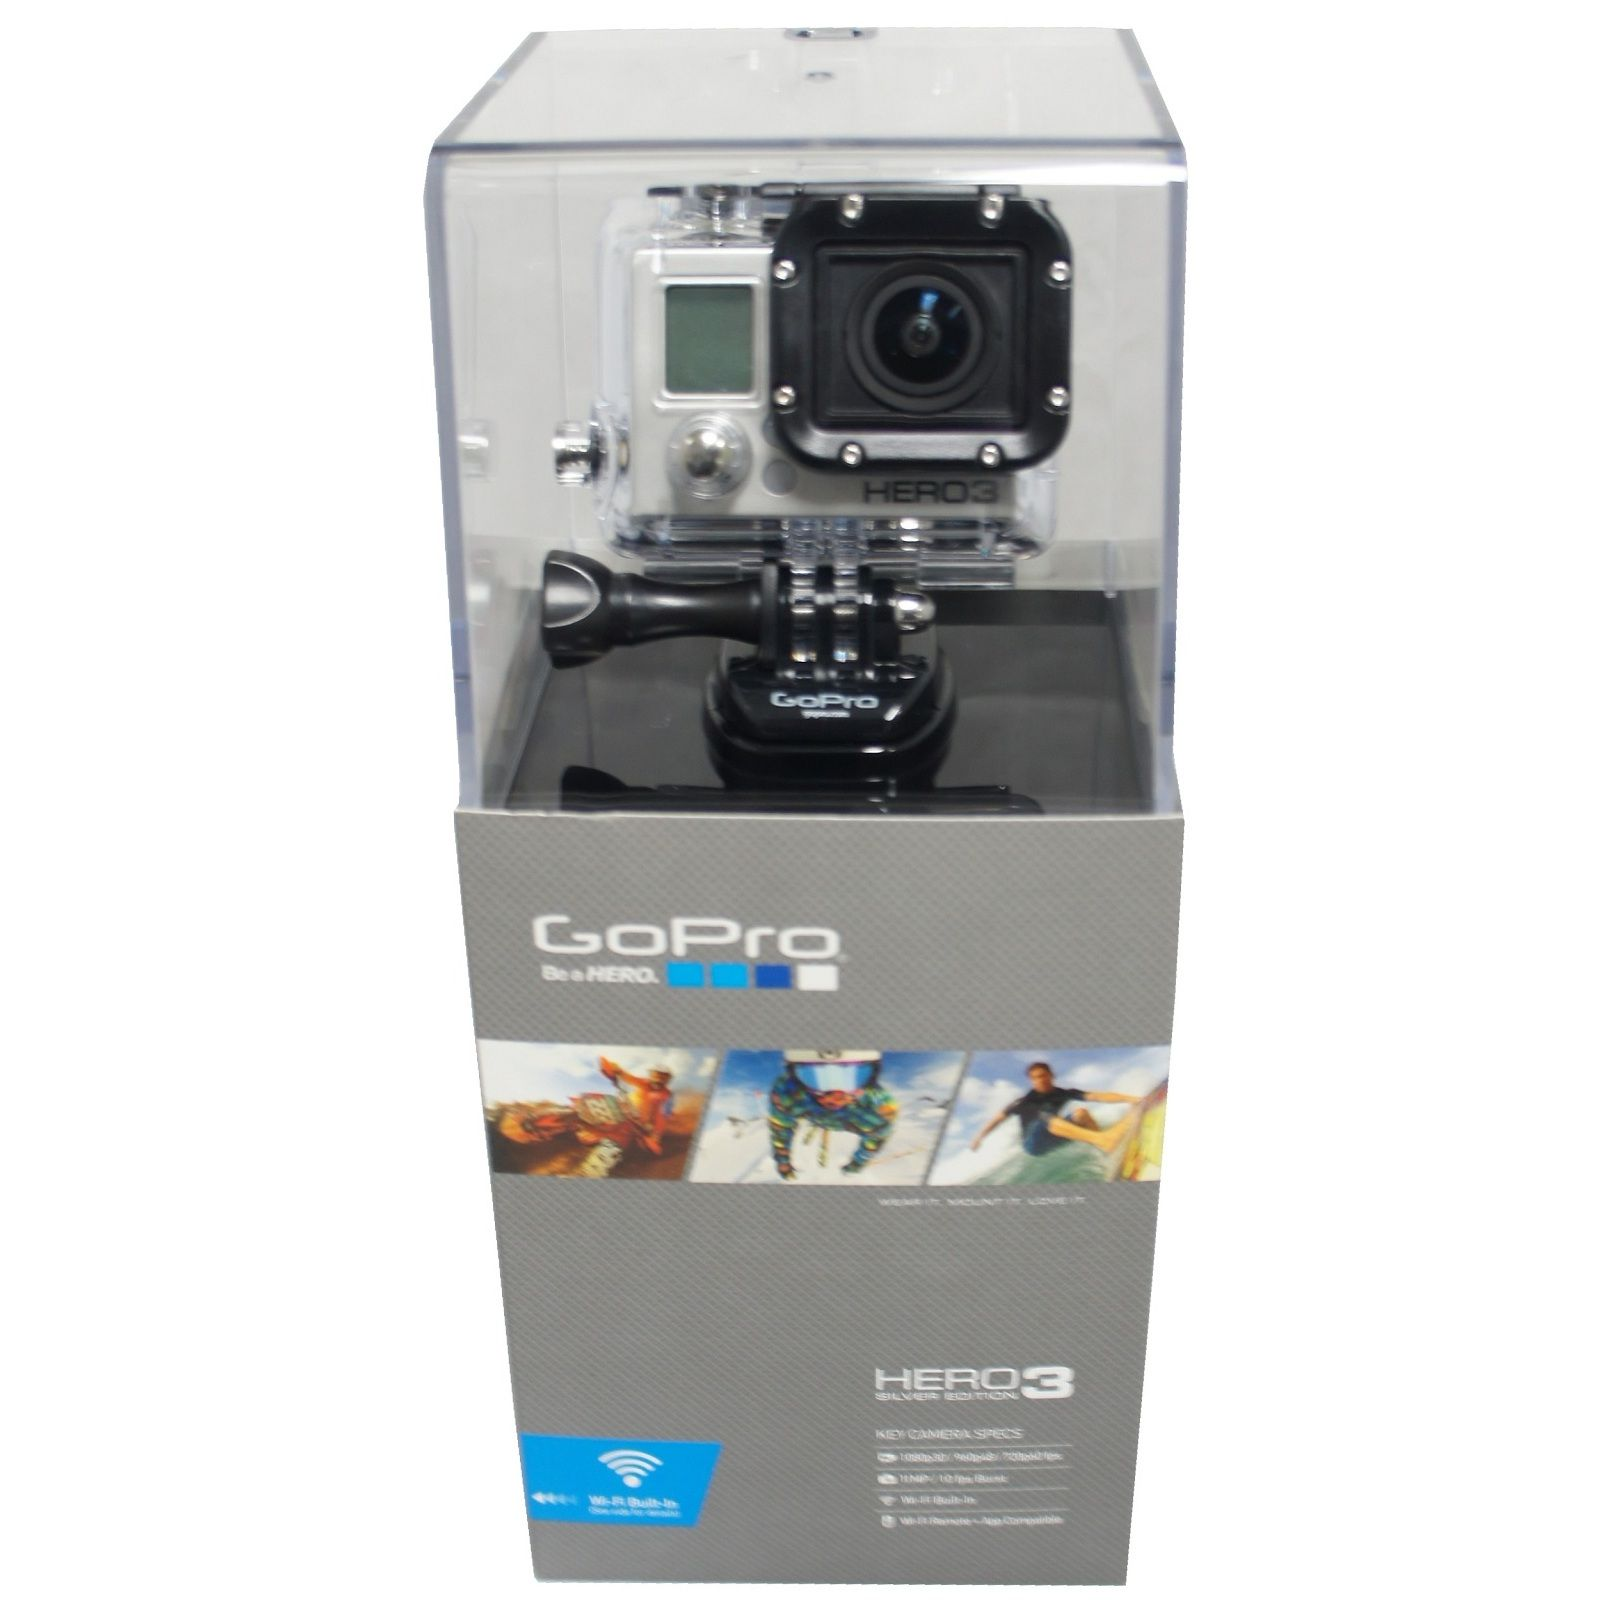 GoPro in the Case